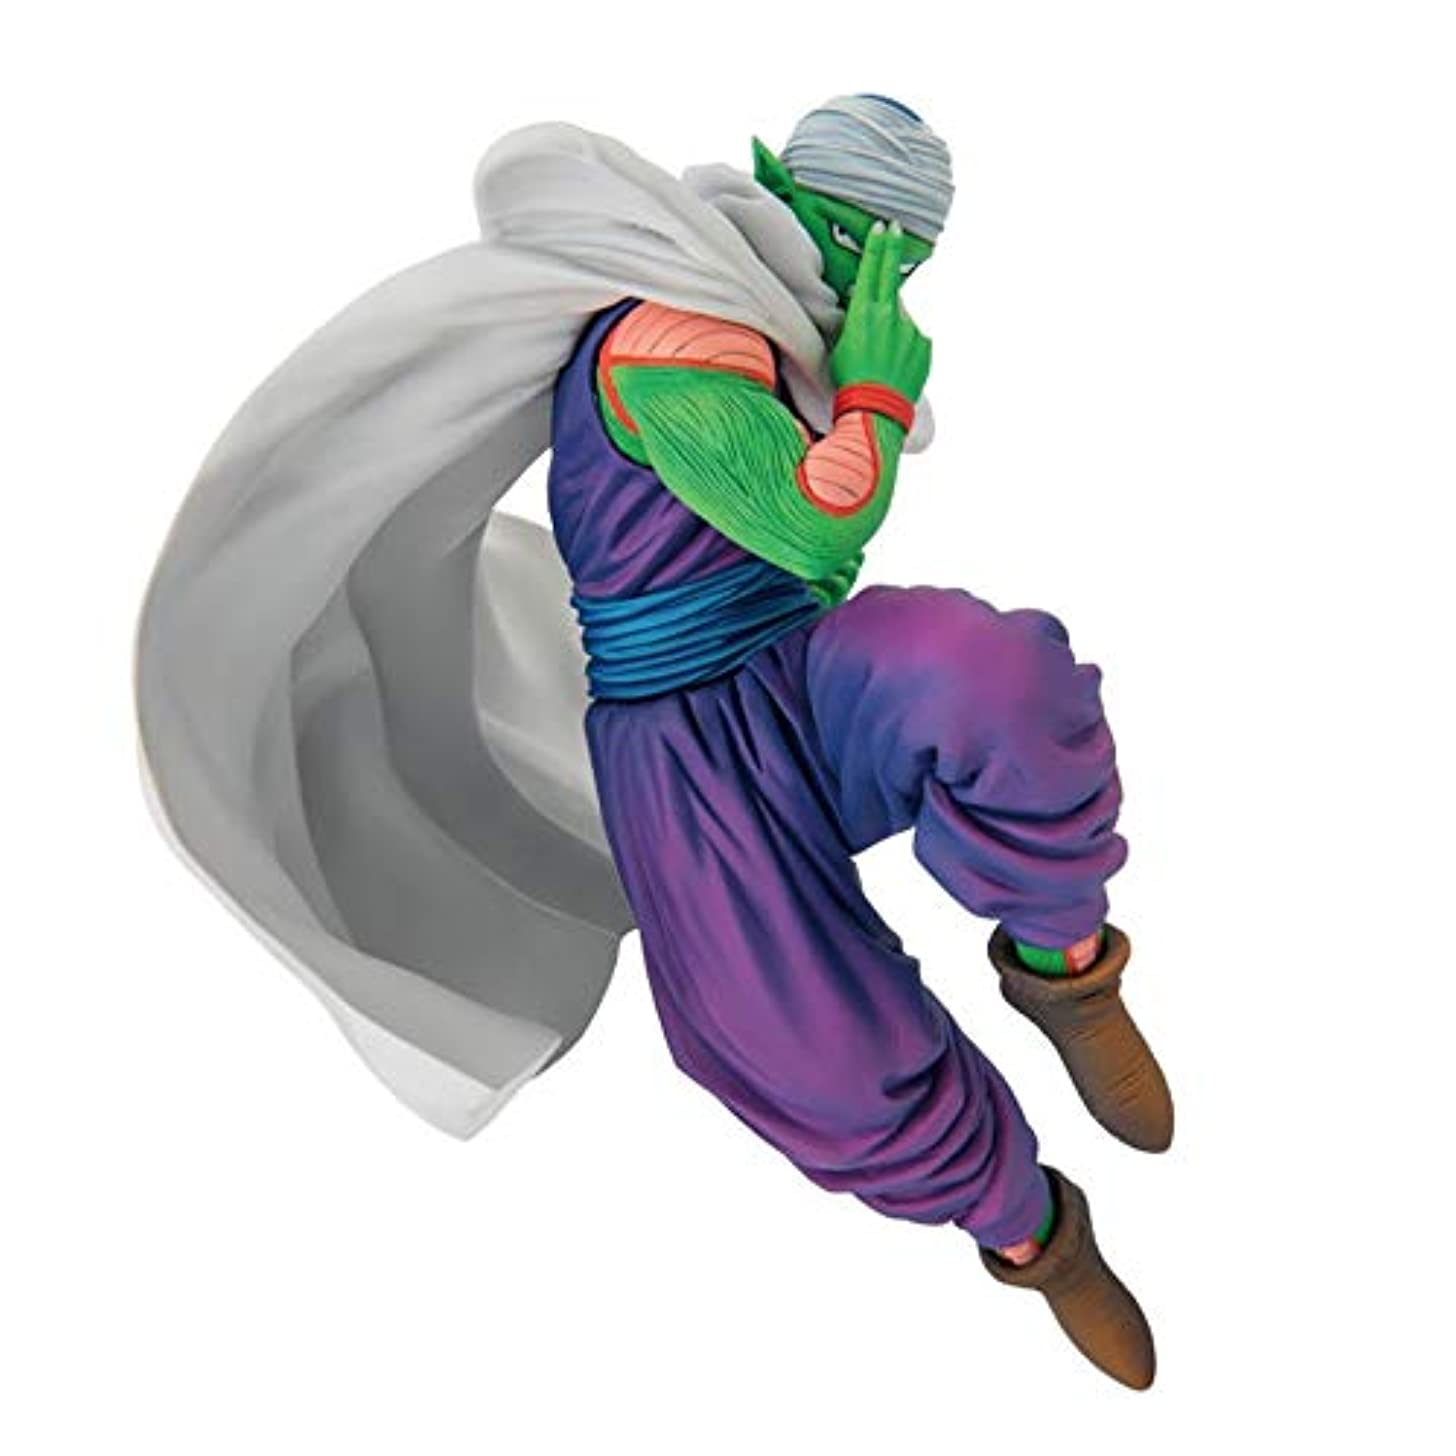 Banpresto 35762 Dragon Ball Z World Figure Colosseum Vol. 2 Bwfc Piccolo Figure